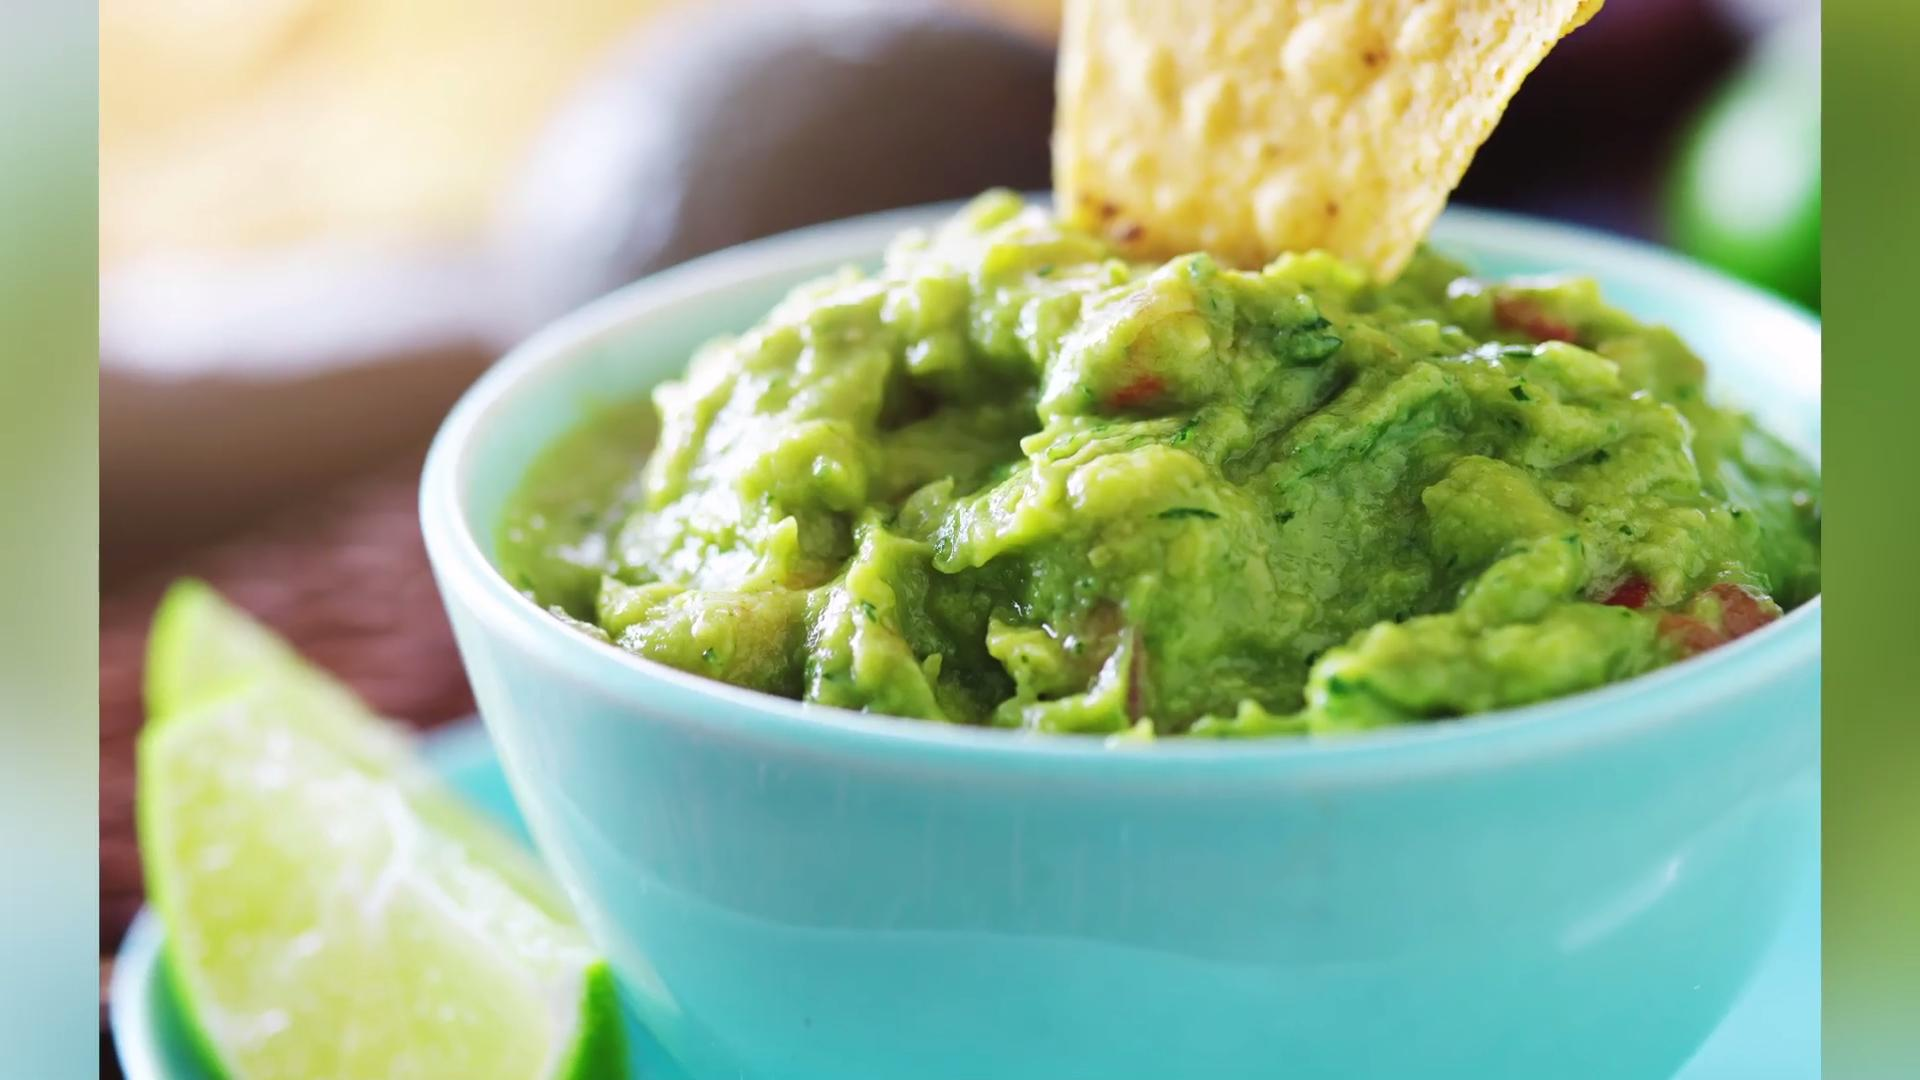 The Best Green Foods for St. Patrick's Day Parties